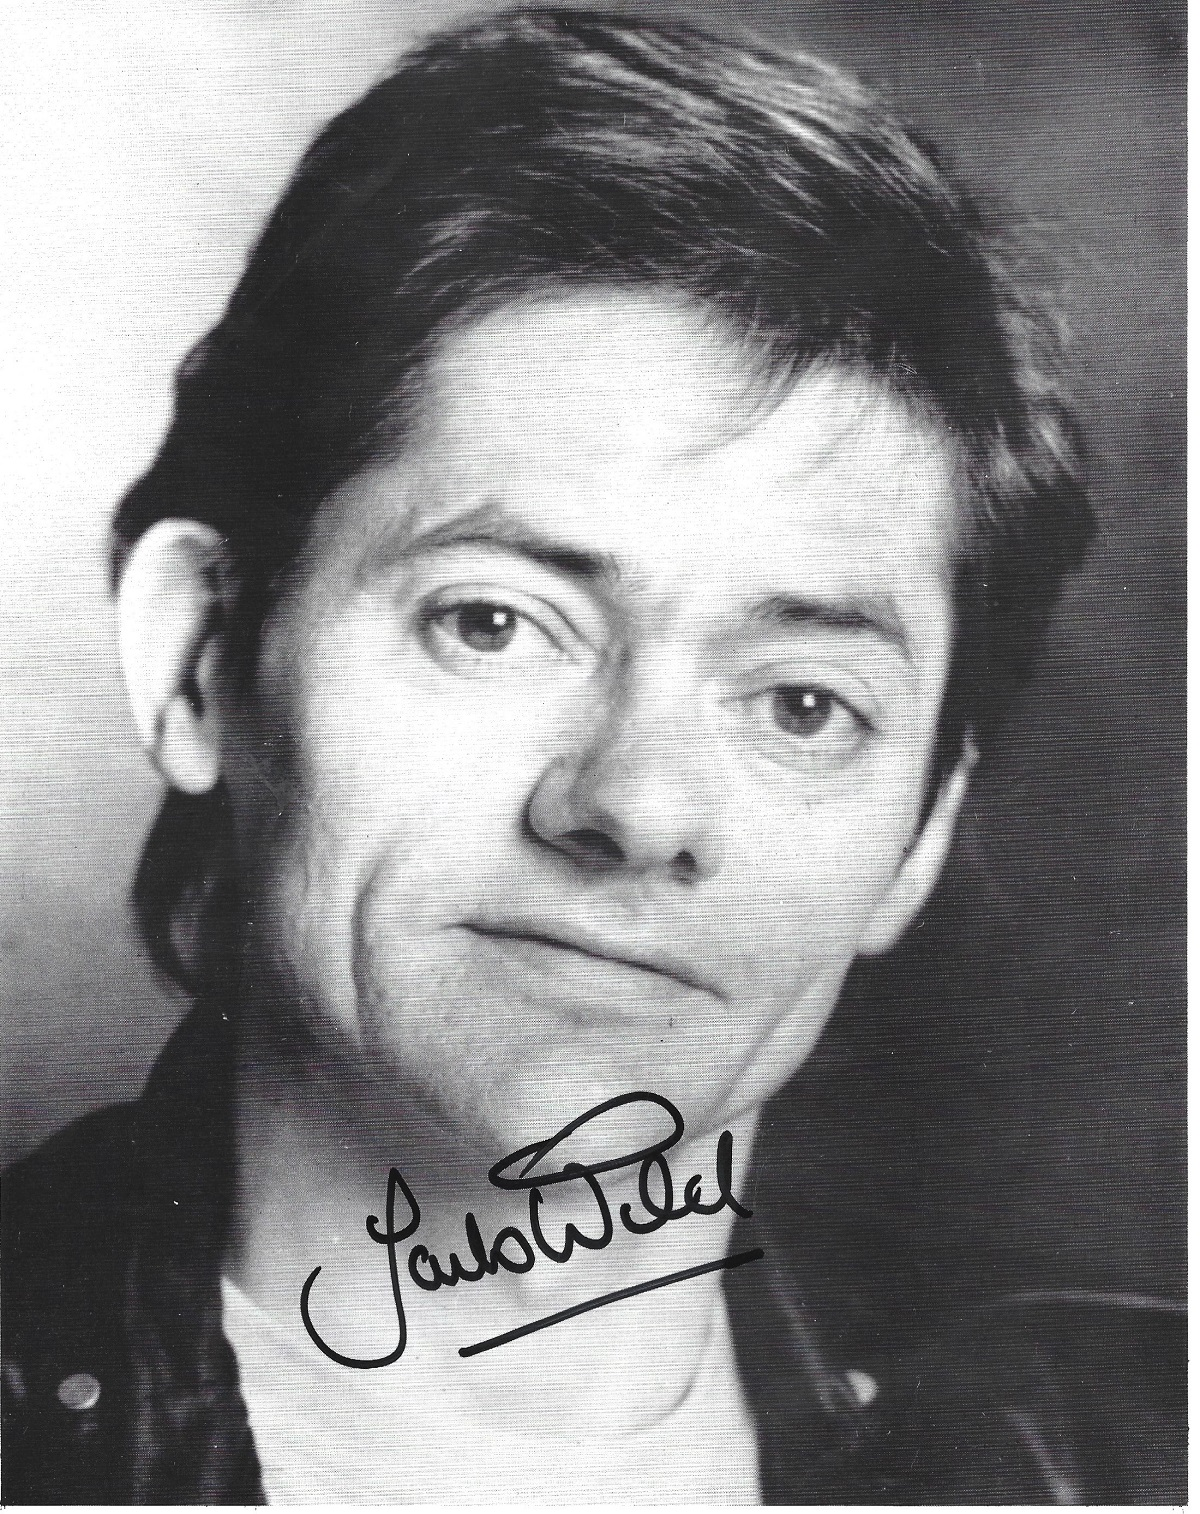 Jack Wild signed 10x8 black and white photo. Jack Wild (30 September 1952 - 1 March 2006) was an